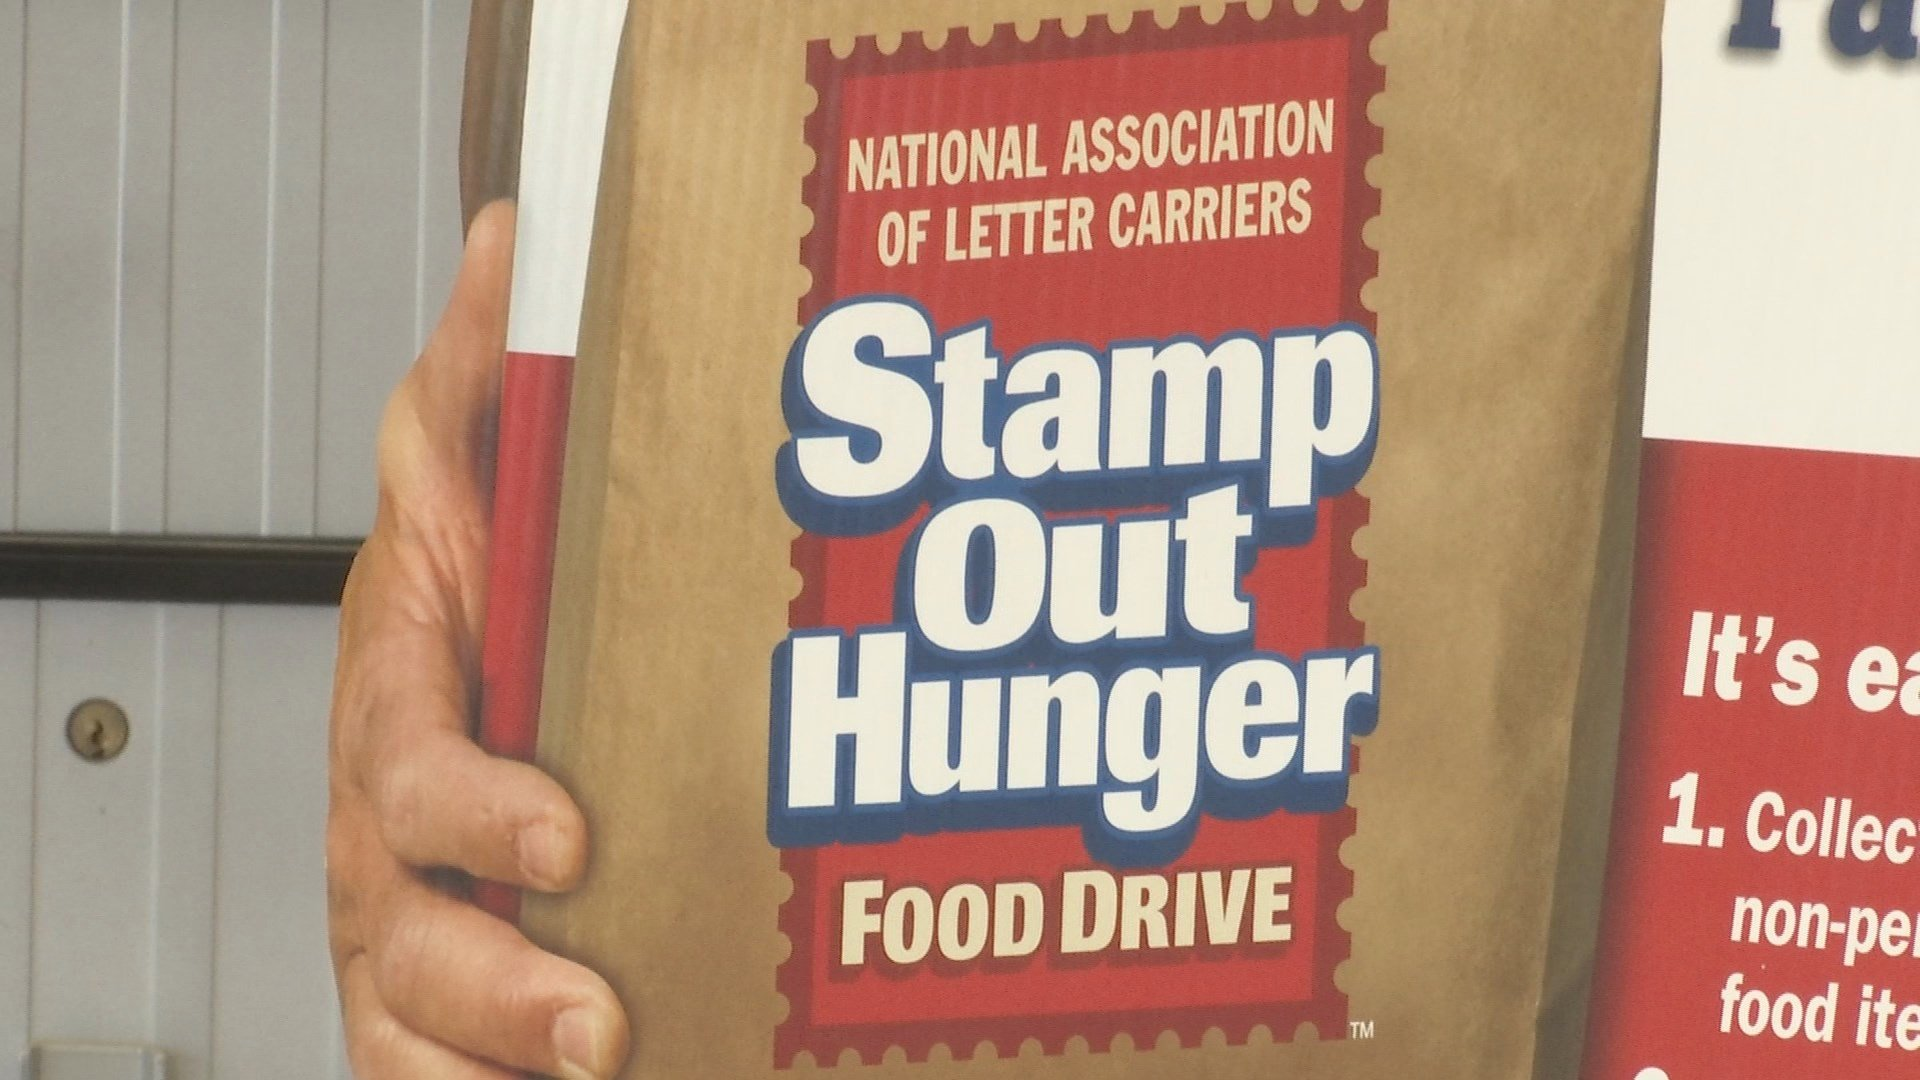 Saturday marks annual mail carrier food drive